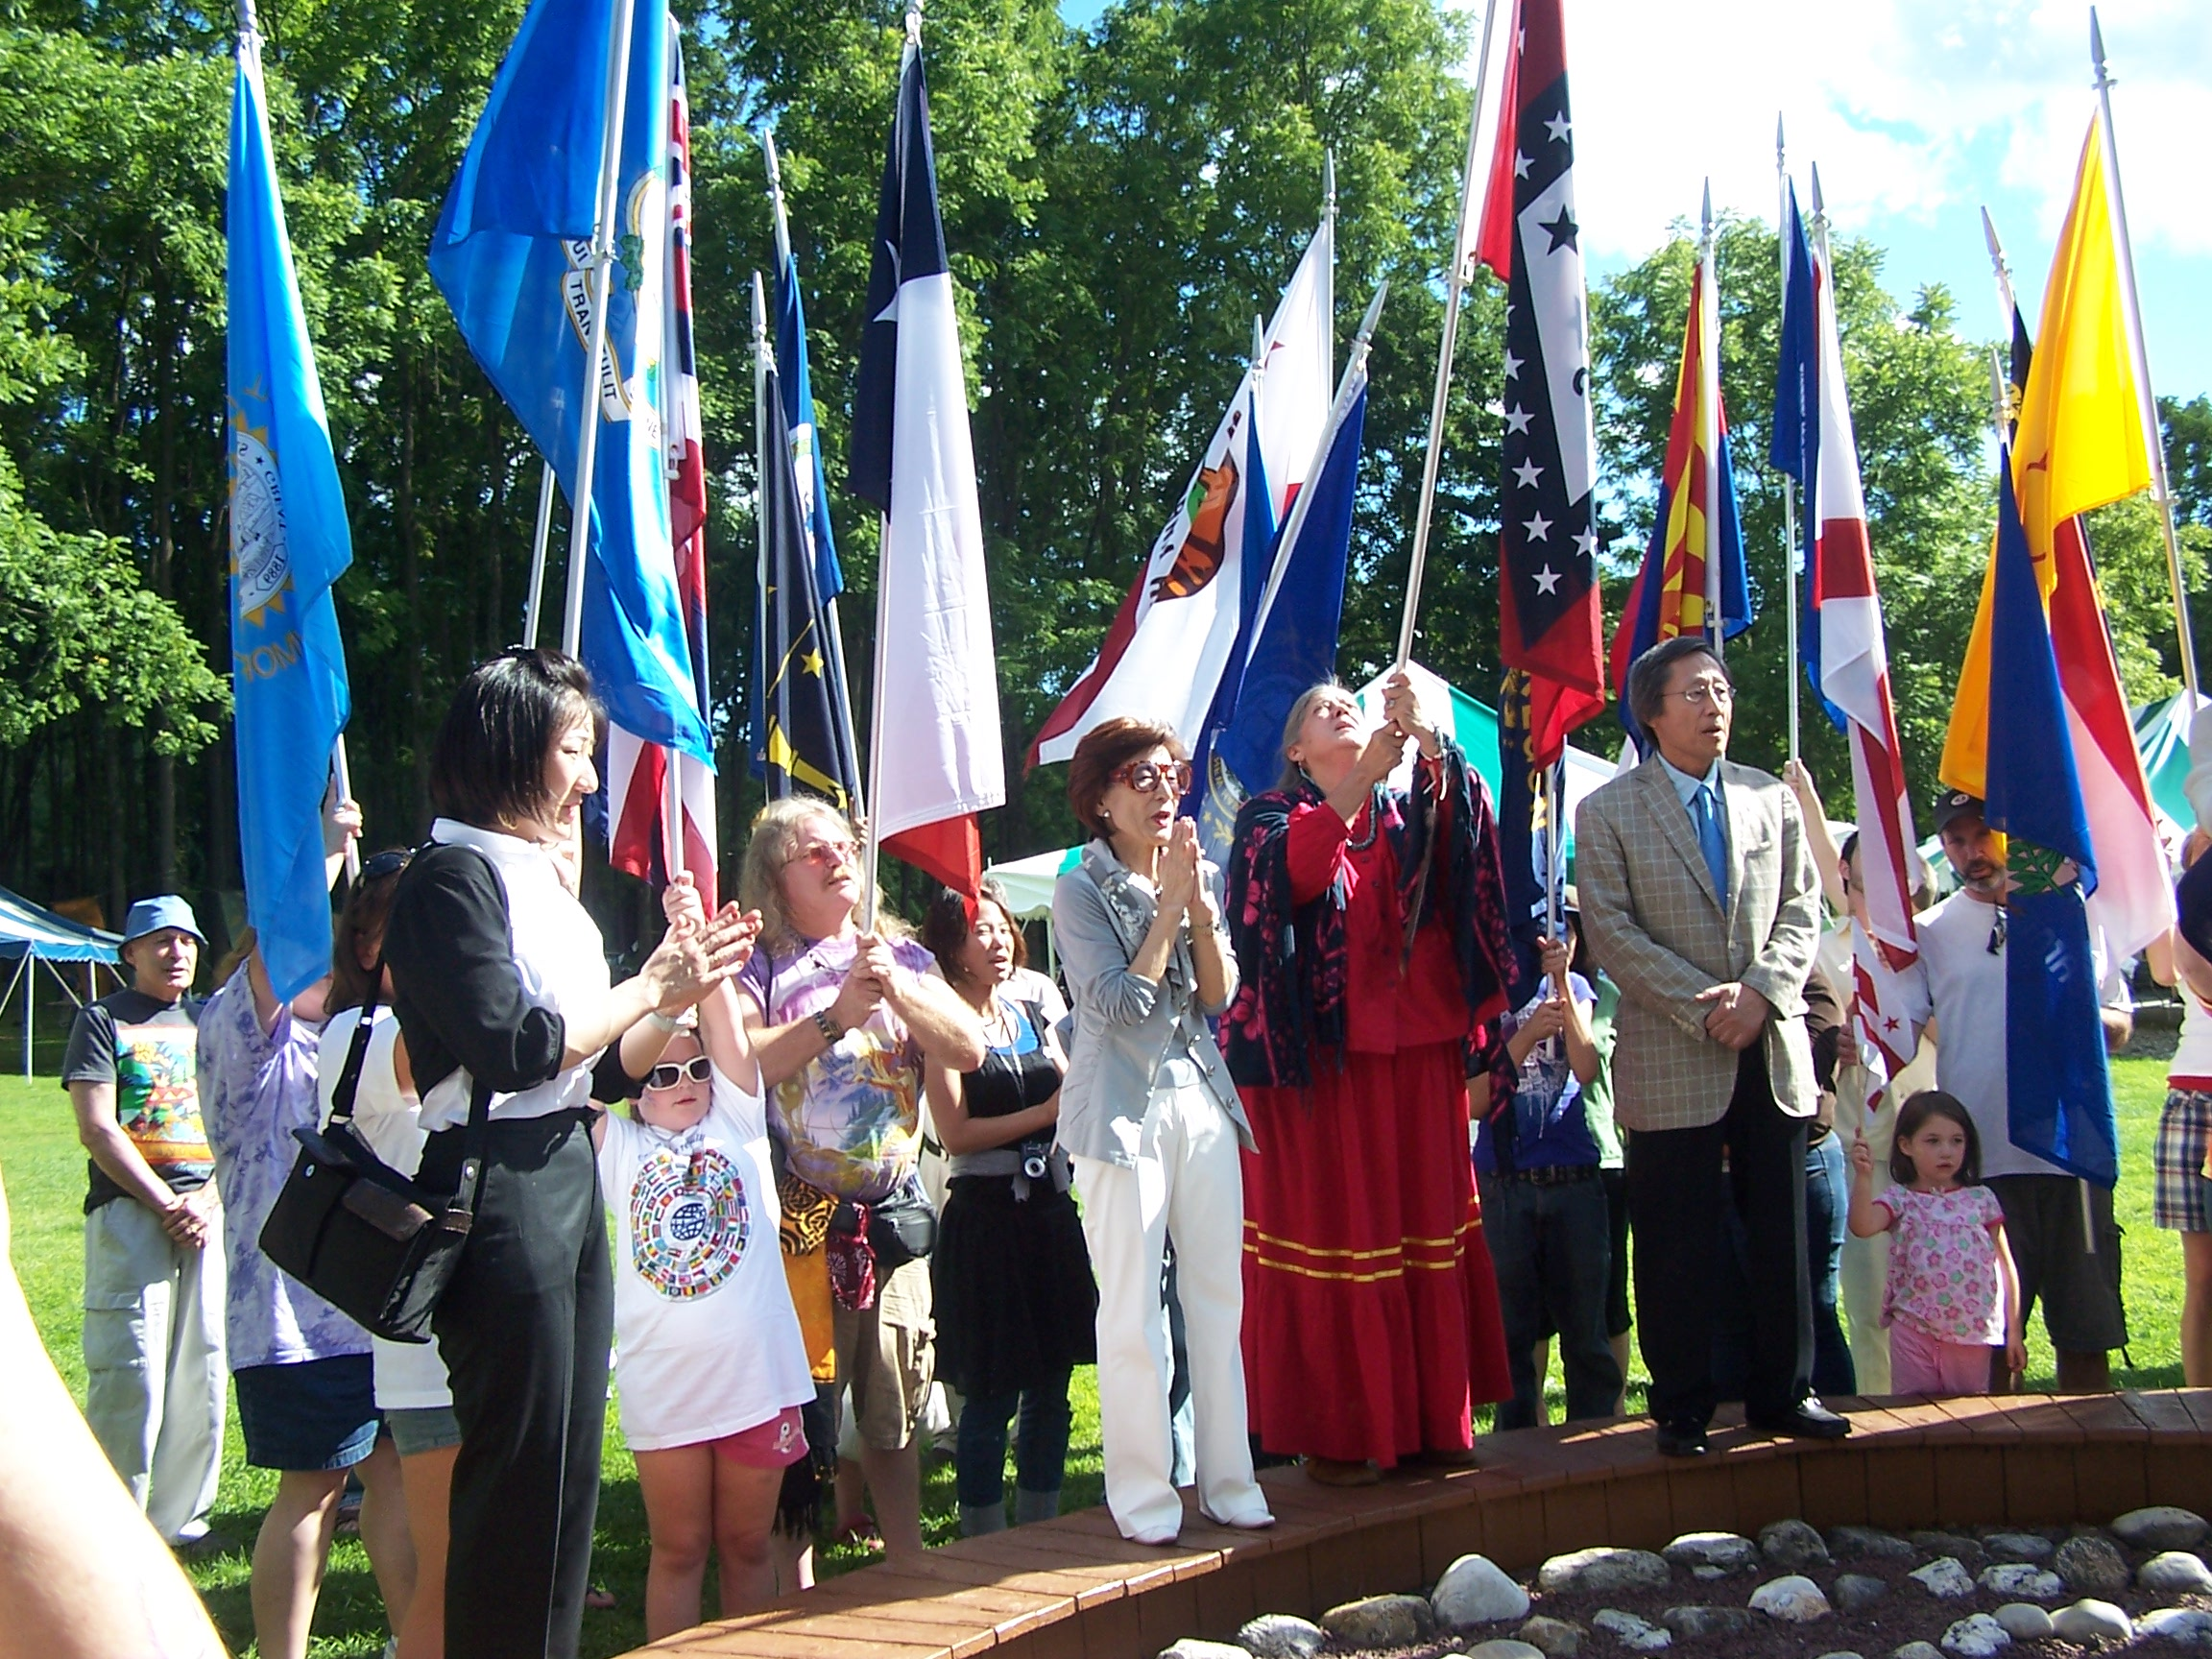 The Saionji's, special guests and visitors show support during the Time Capsule planting.